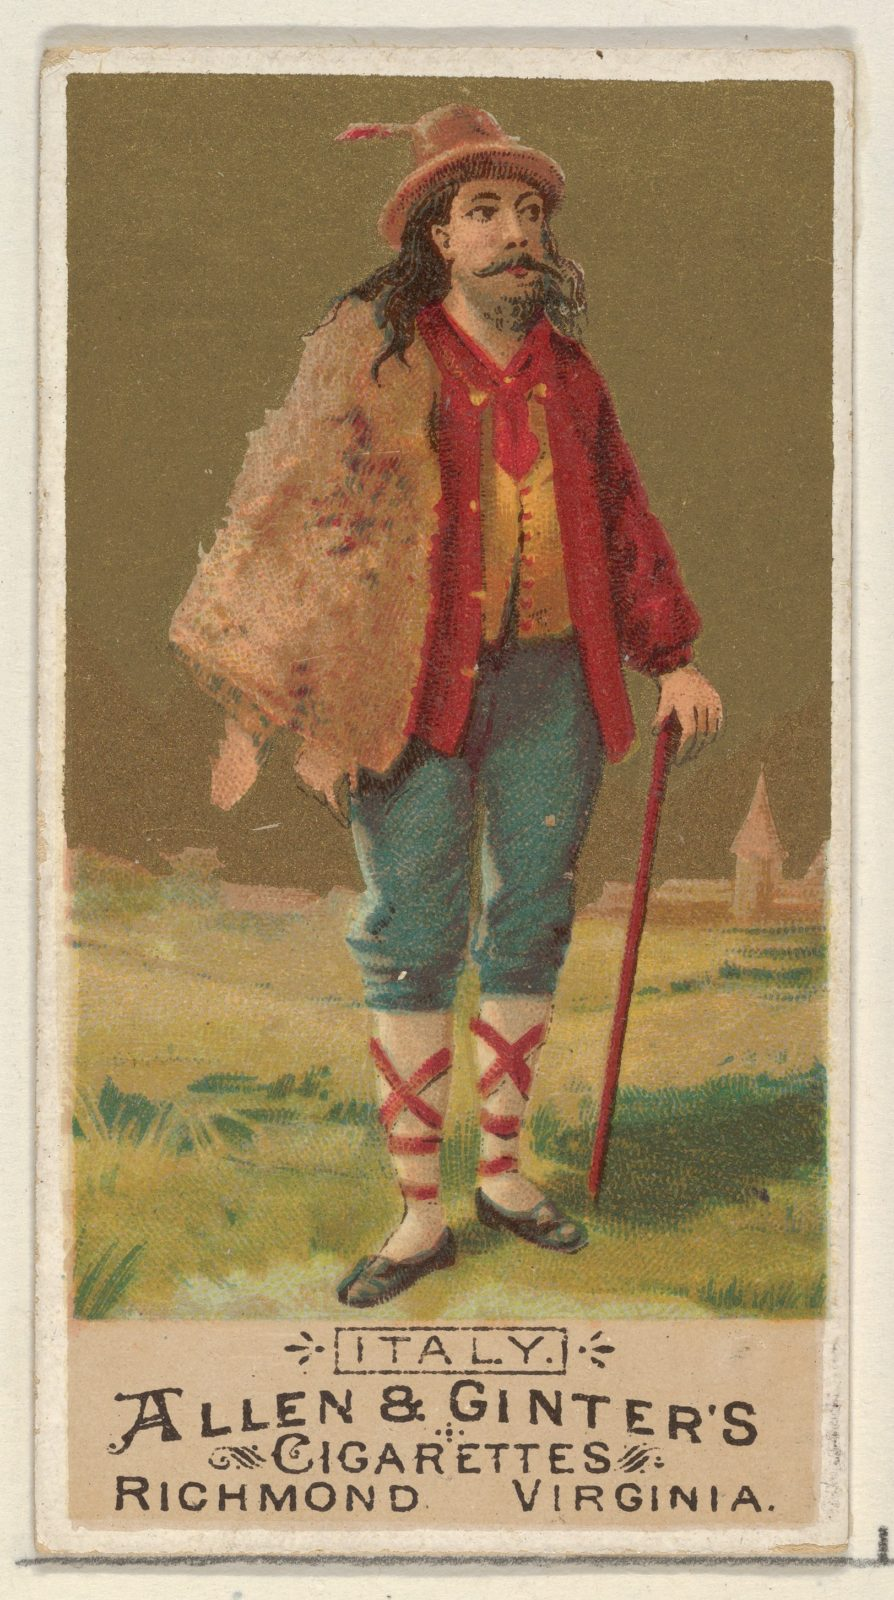 Italy, from the Natives in Costume series (N16) for Allen & Ginter Cigarettes Brands